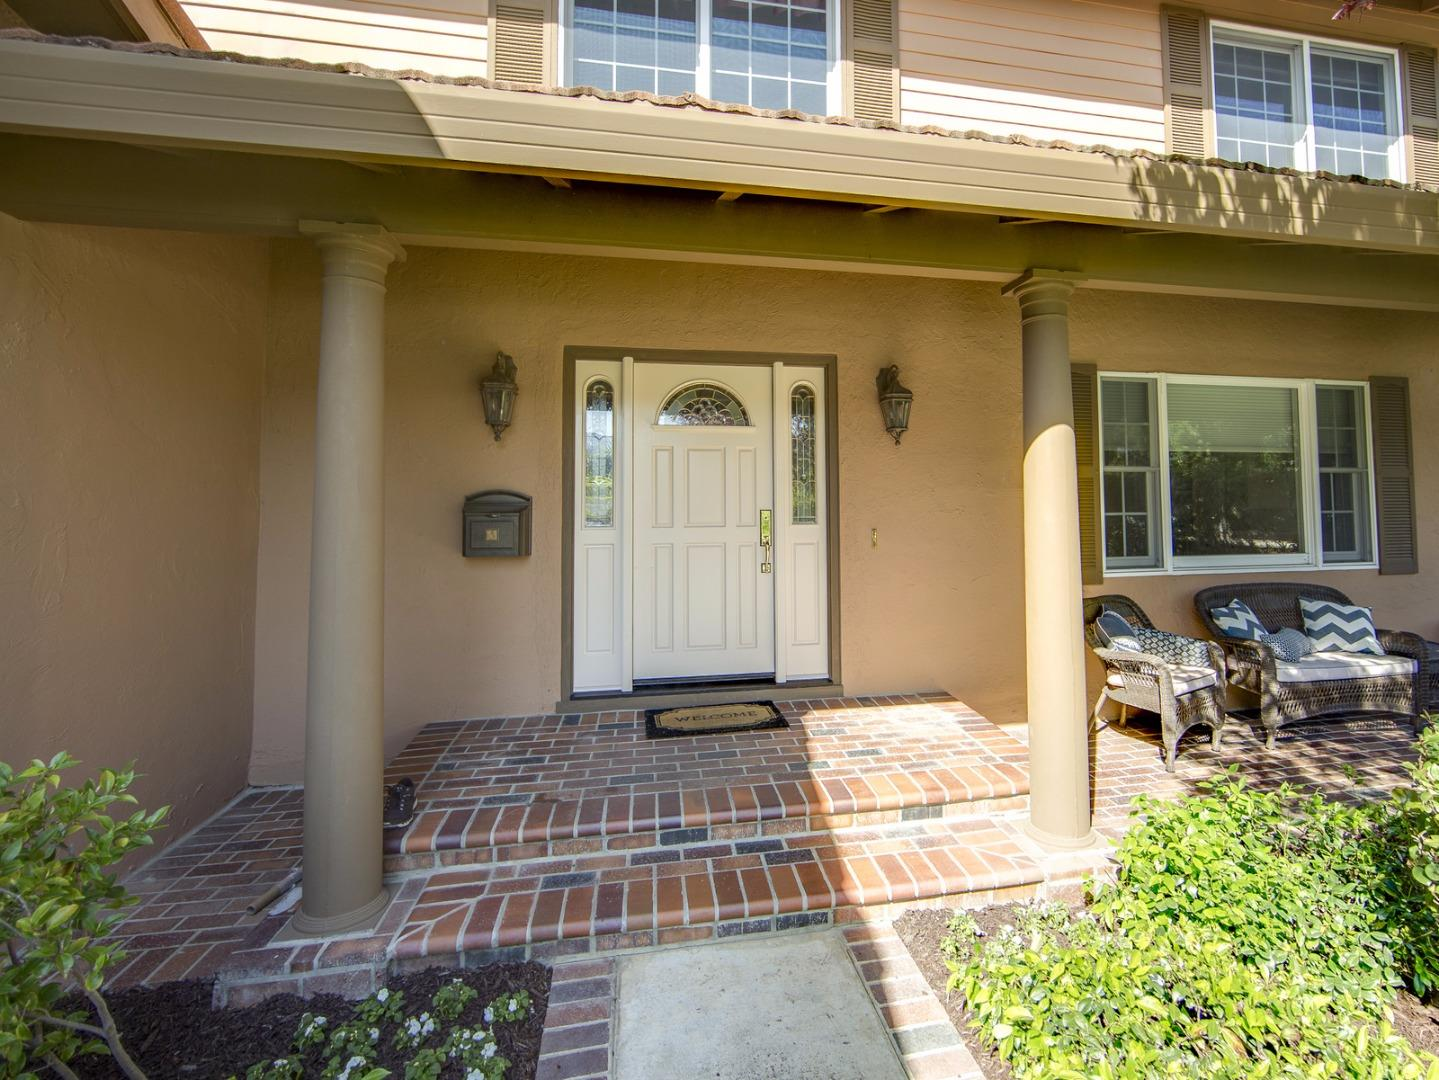 Additional photo for property listing at 6852 Eldridge Dr  SAN JOSE, CALIFORNIA 95120